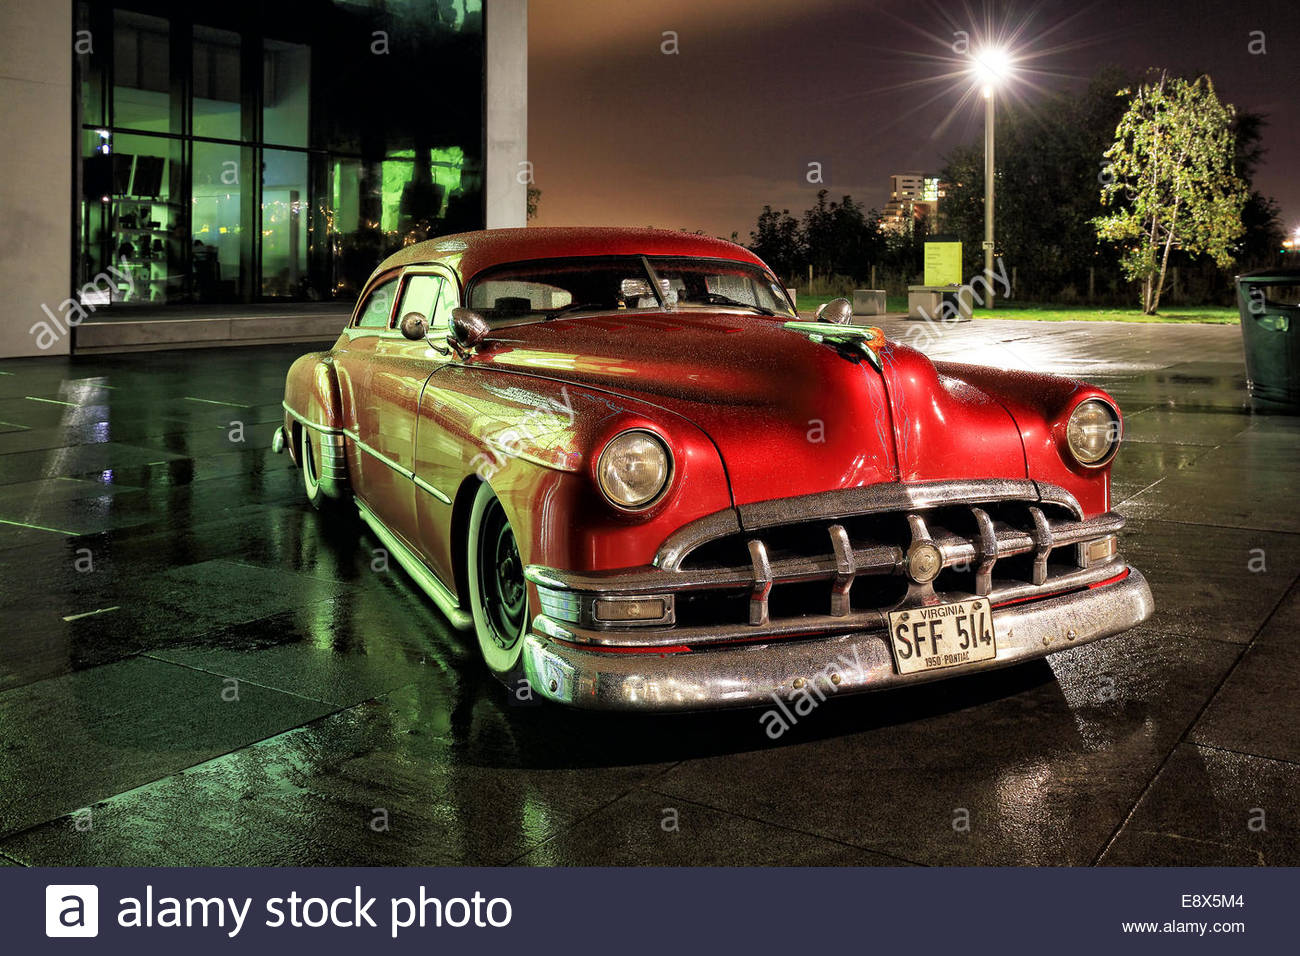 Night shot of a classic Pontiac 1950 outside the Glasgow Riverside Transport Museum reflecting on the rain soaked - Stock Image